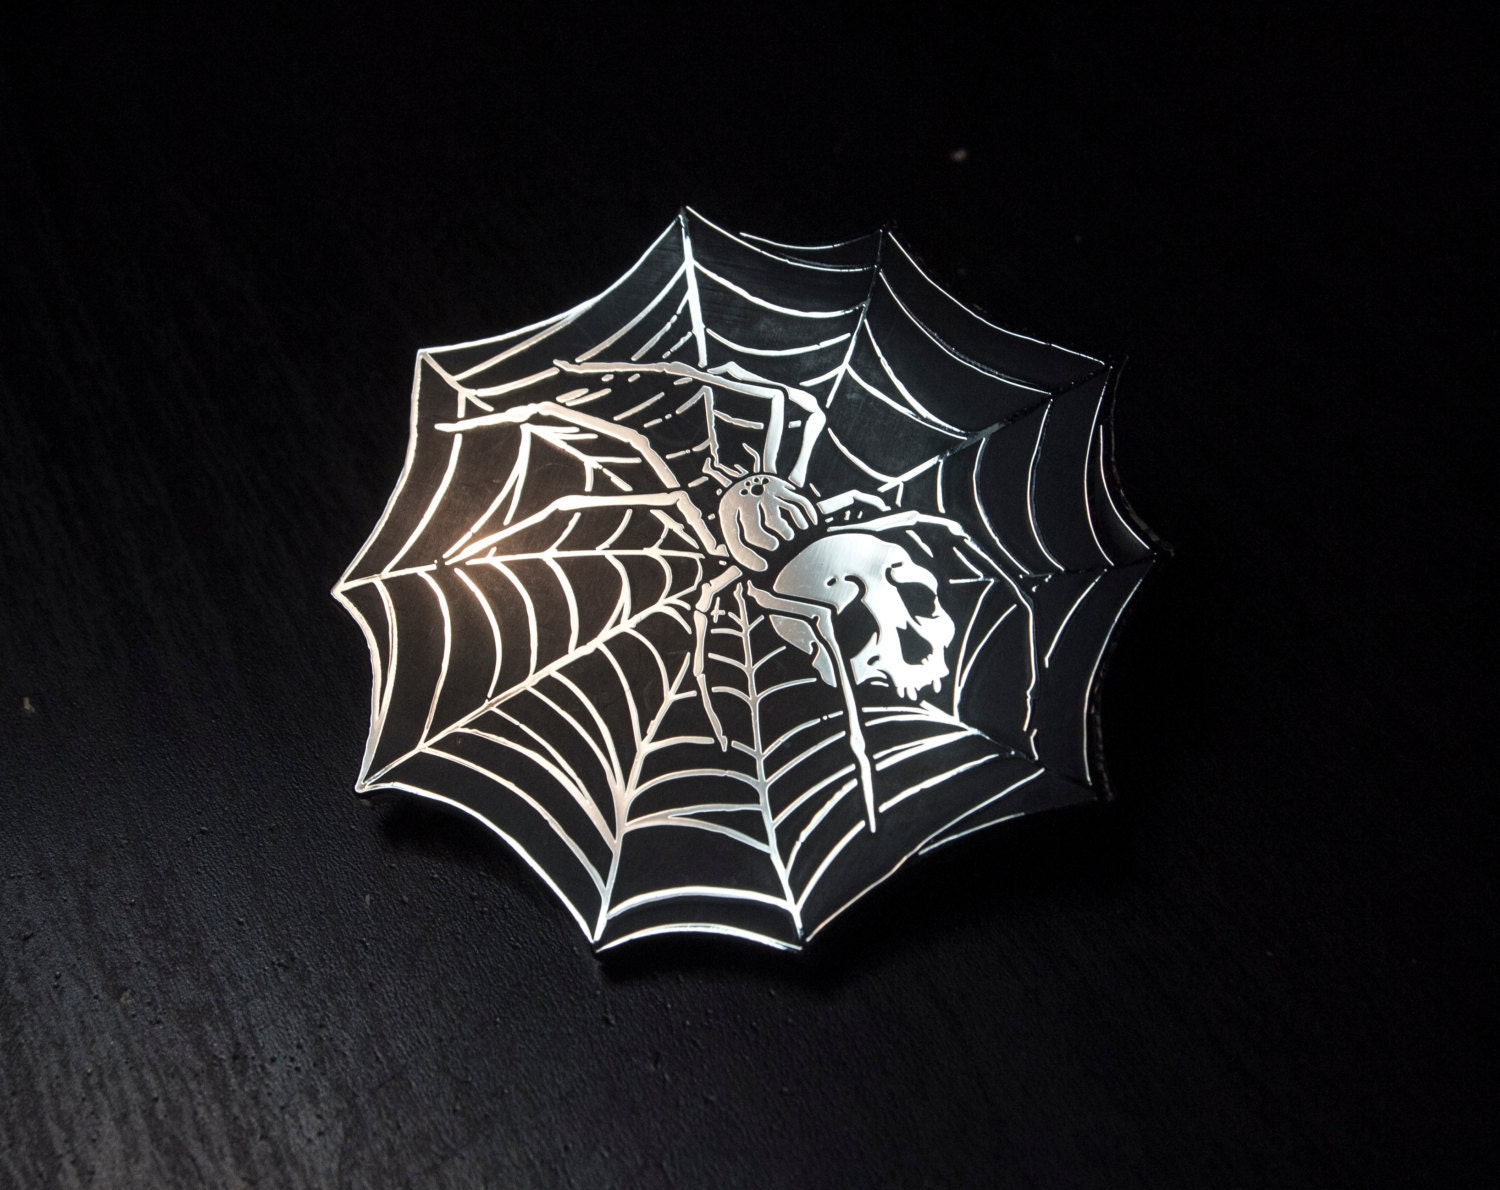 Webspinner - Open Edition Enamel Pin